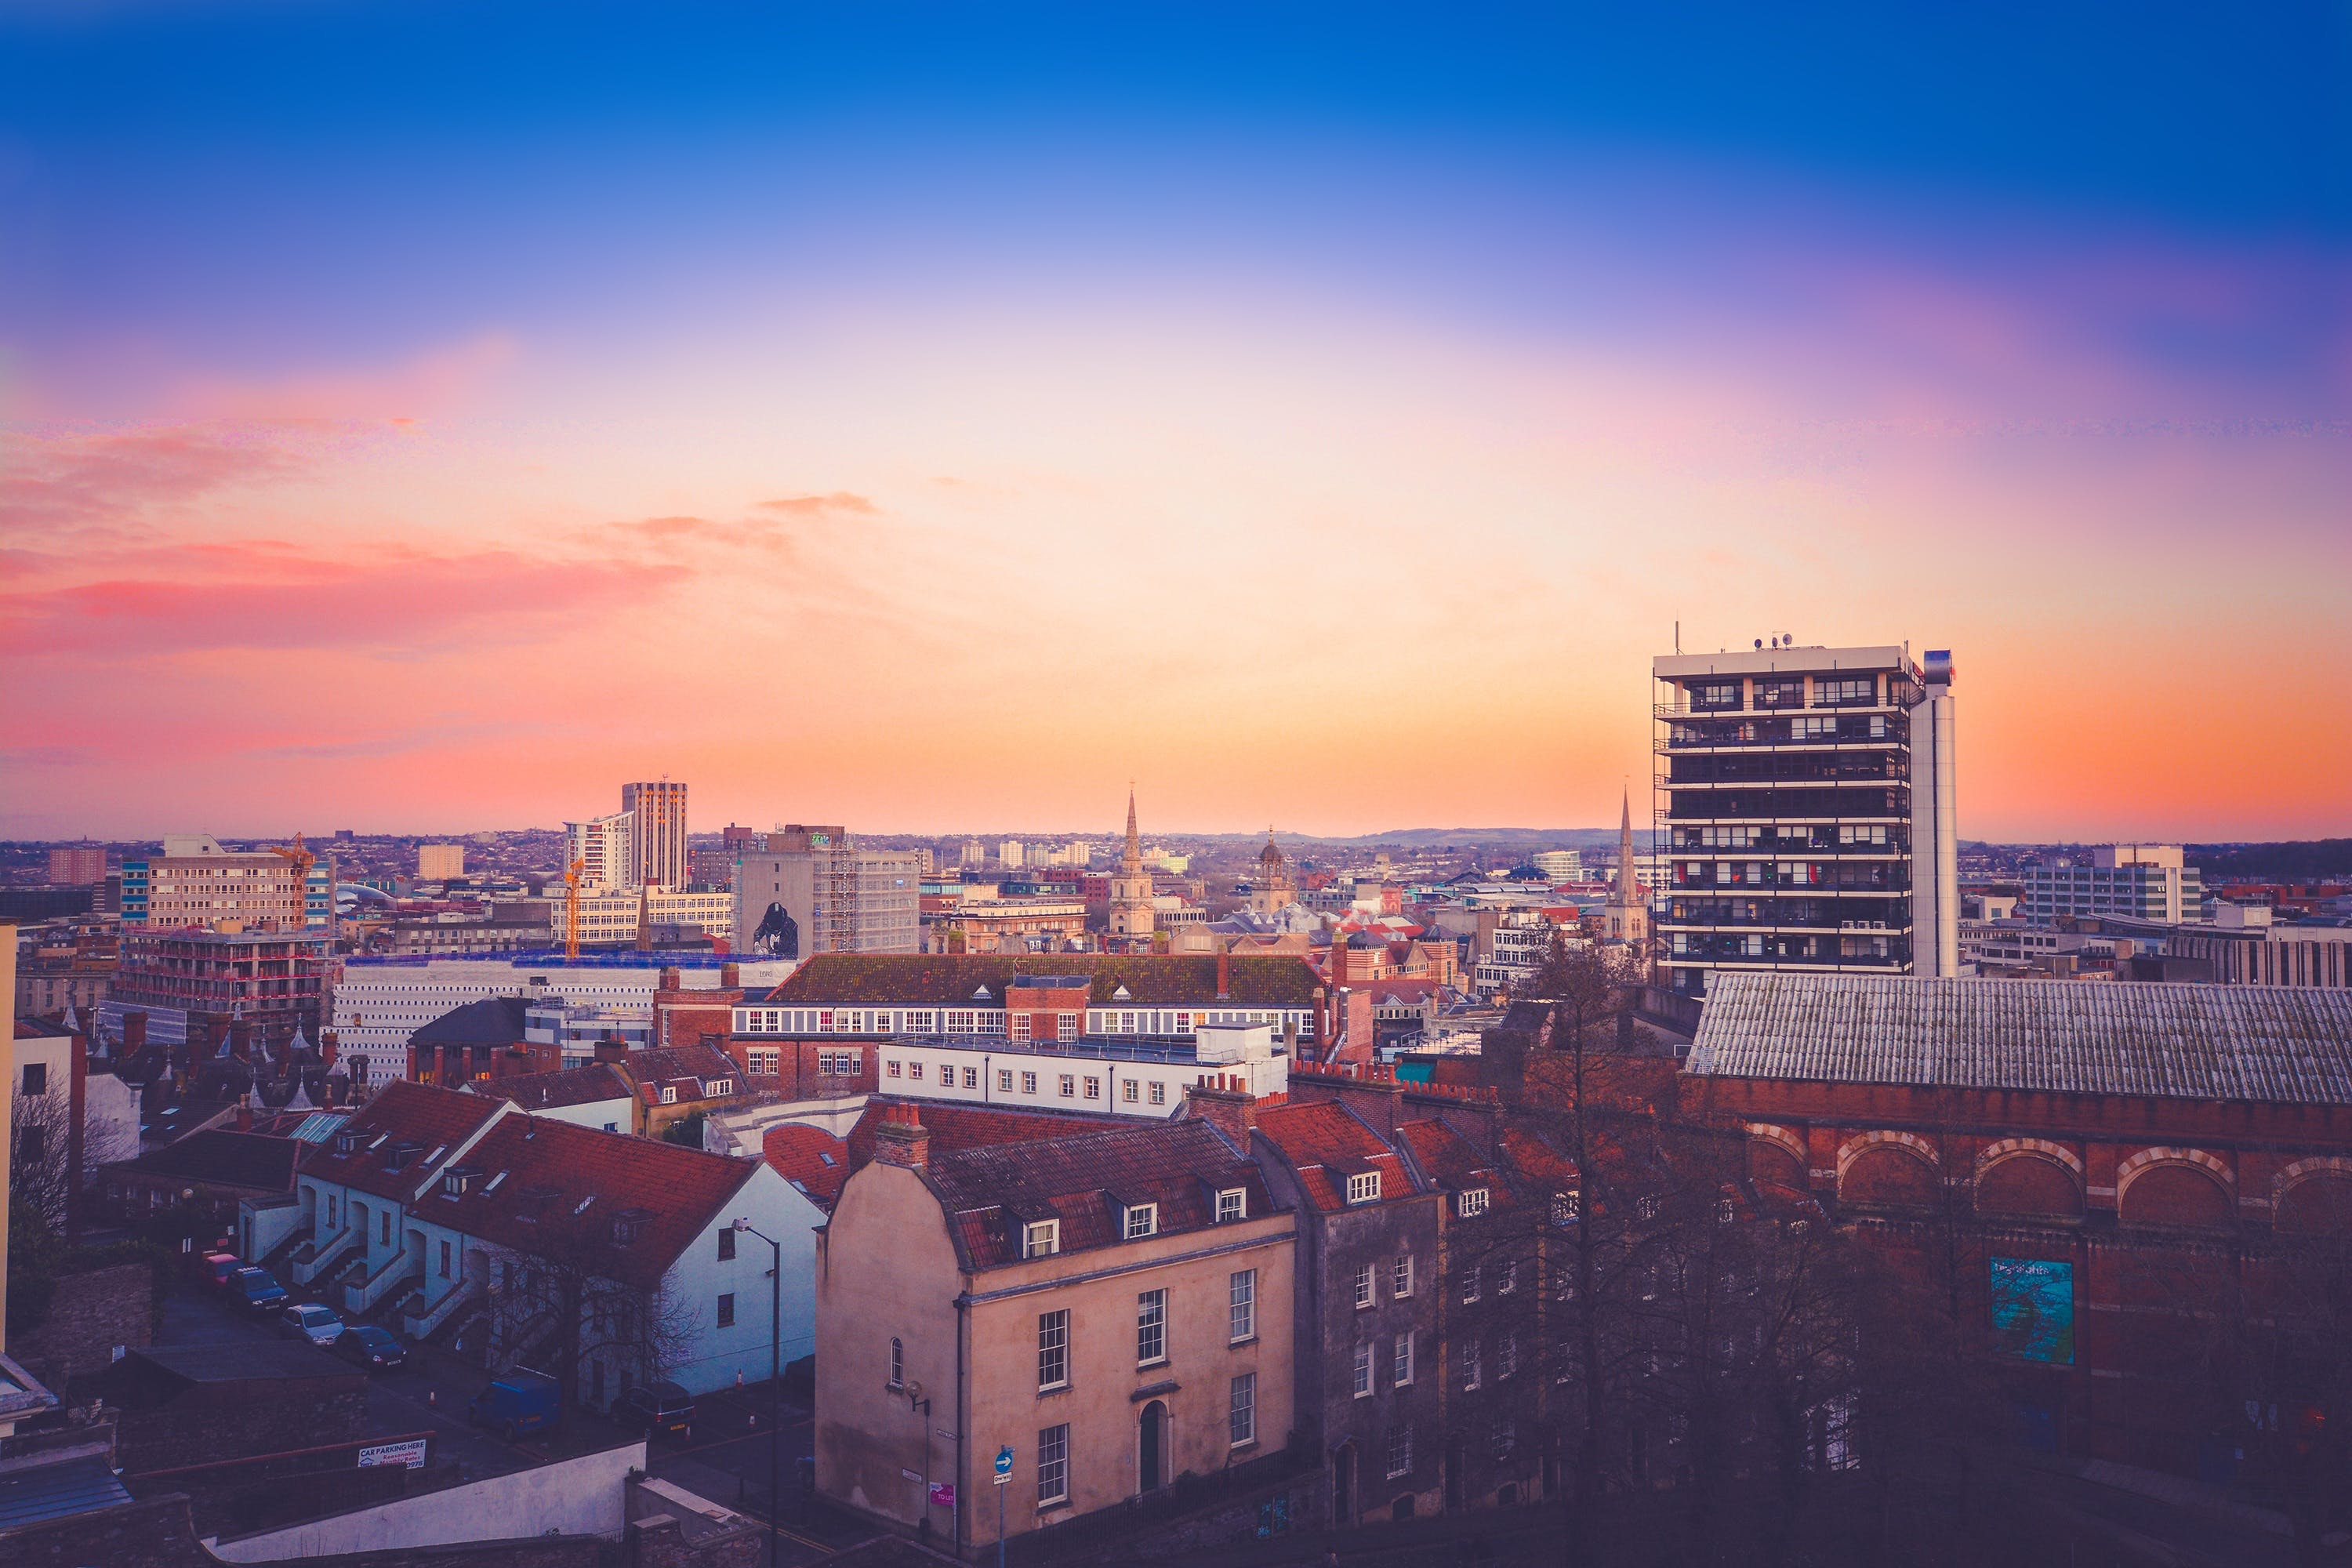 Free stock photo of city, sky, sunset, houses